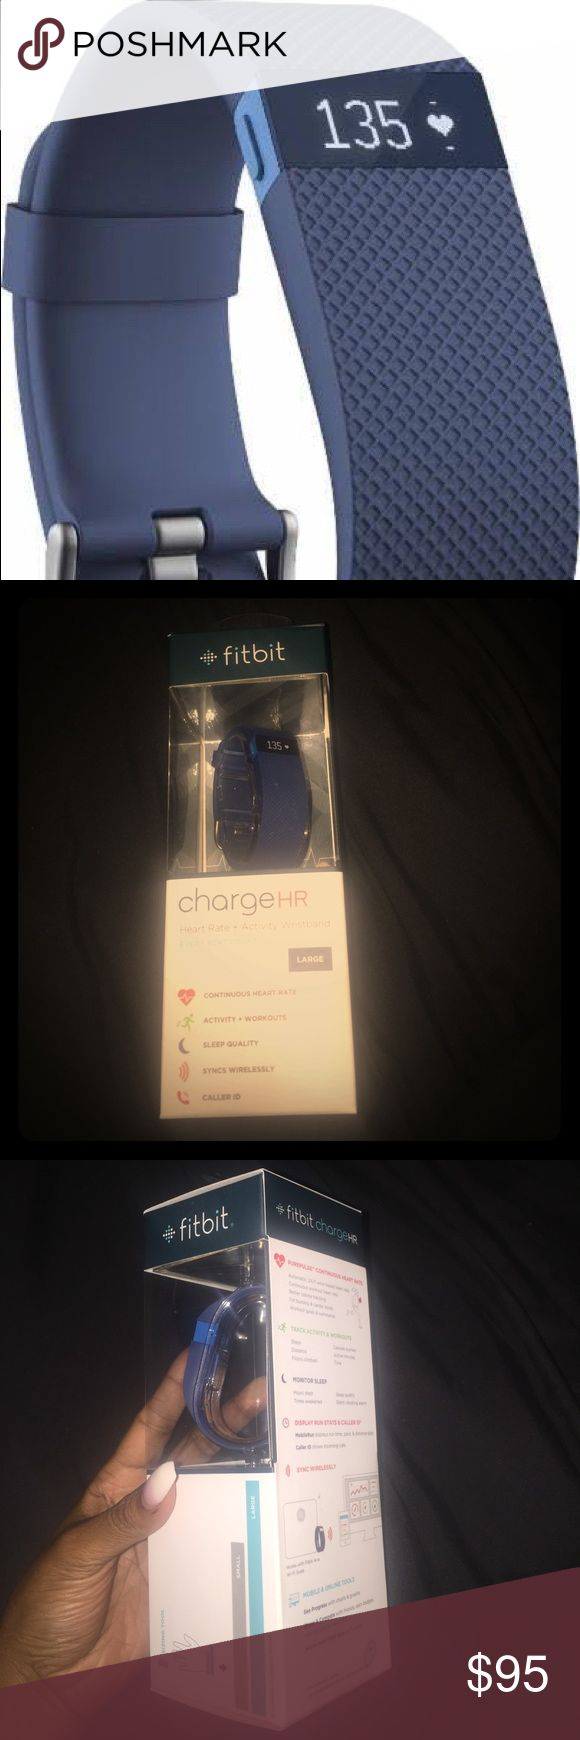 Blue Fitbit Blue charge HR Fitbit brand new ! Heart rate and activity wristband ! Size large ! Make an offer ! fitbit Jewelry Bracelets